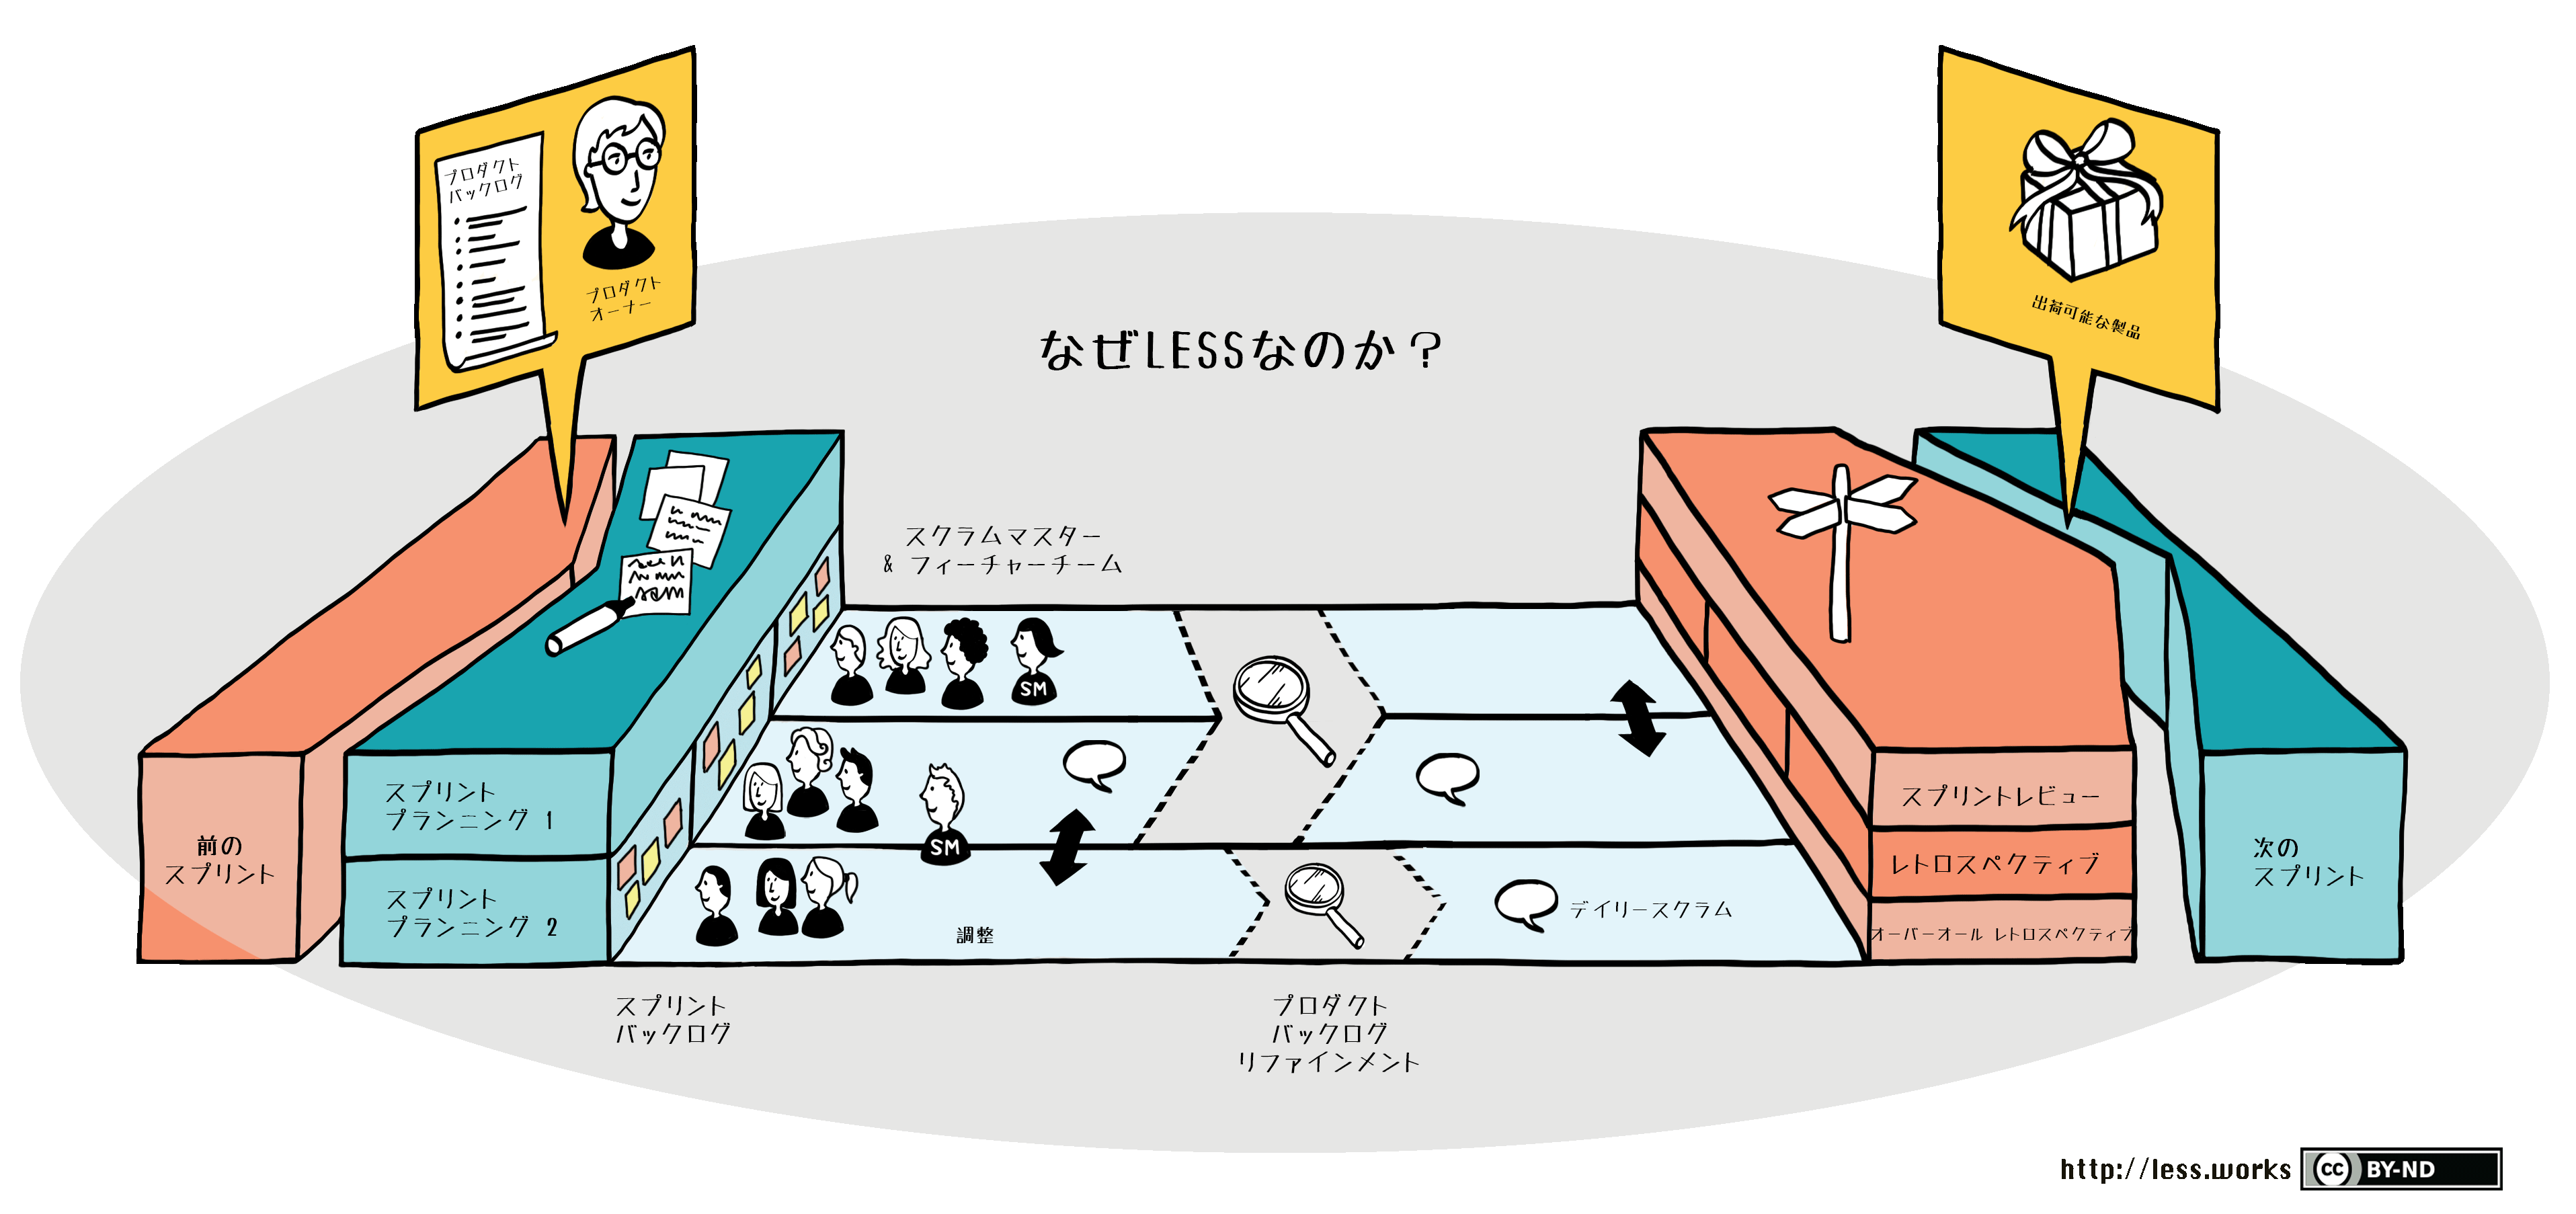 Large Scale Scrum (Less) Framwork